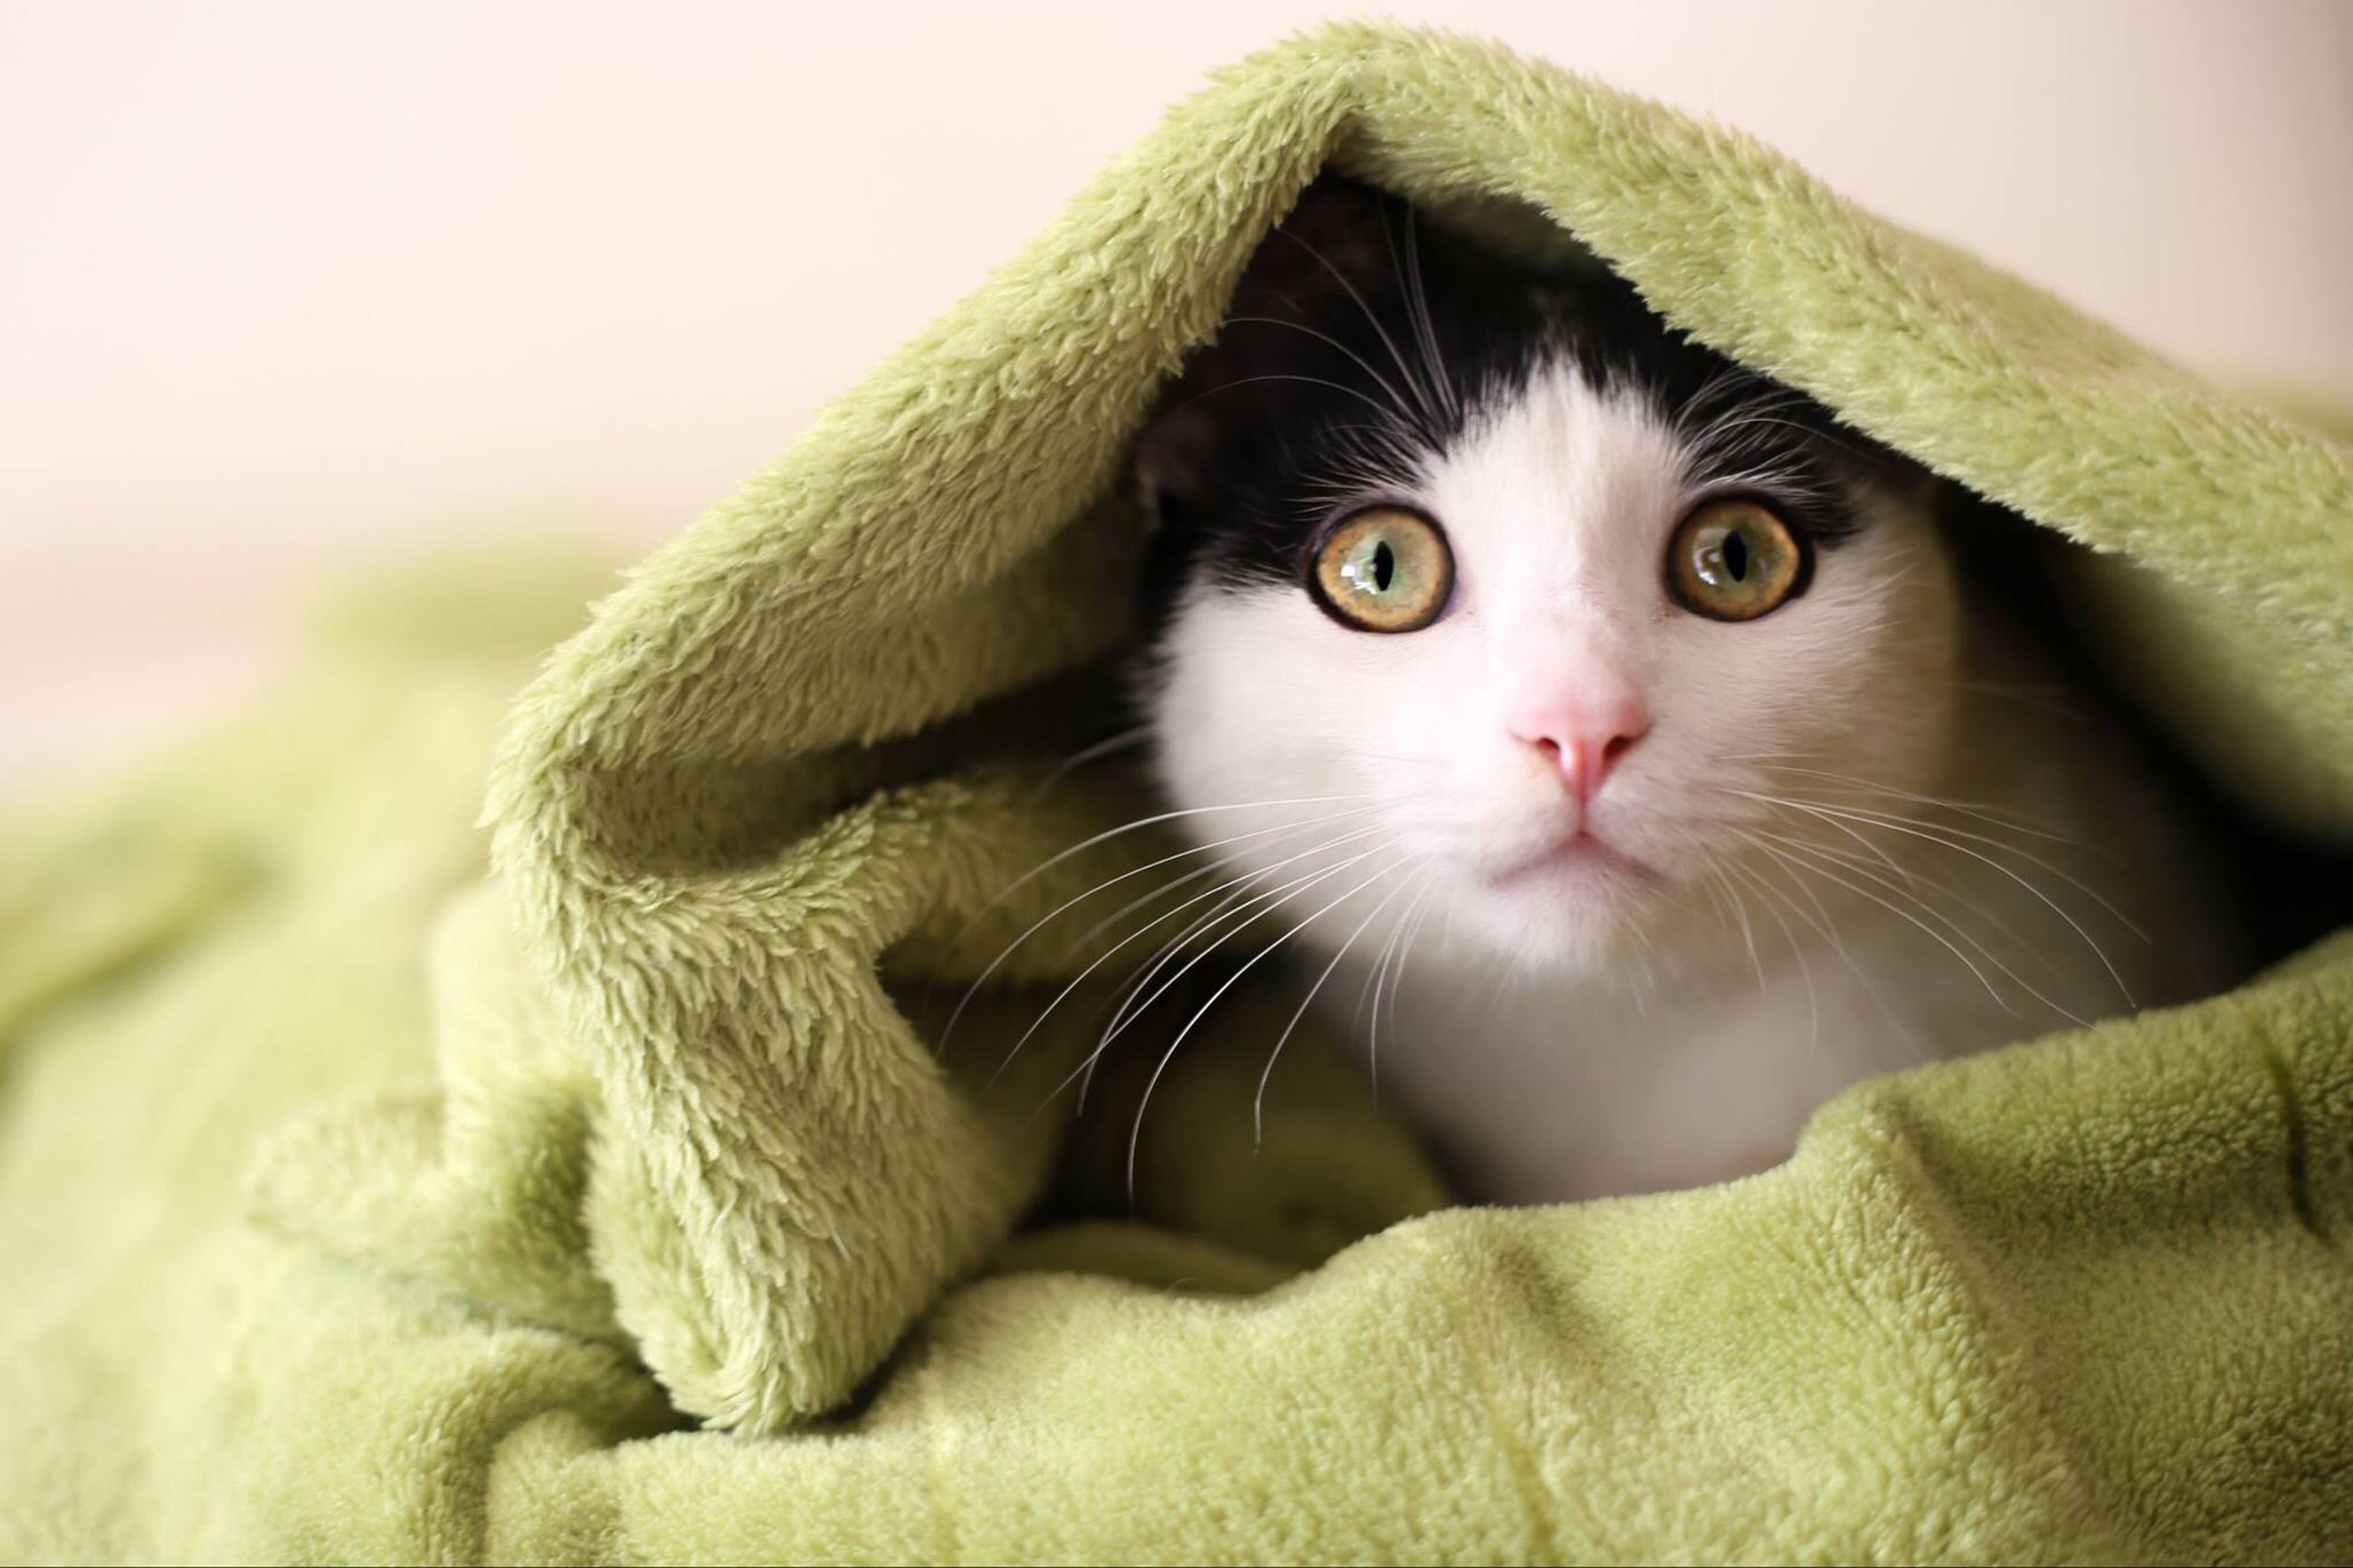 domestic cat, animal themes, cat, one animal, pets, feline, indoors, domestic animals, portrait, looking at camera, whisker, mammal, close-up, relaxation, staring, animal eye, alertness, animal head, focus on foreground, bed